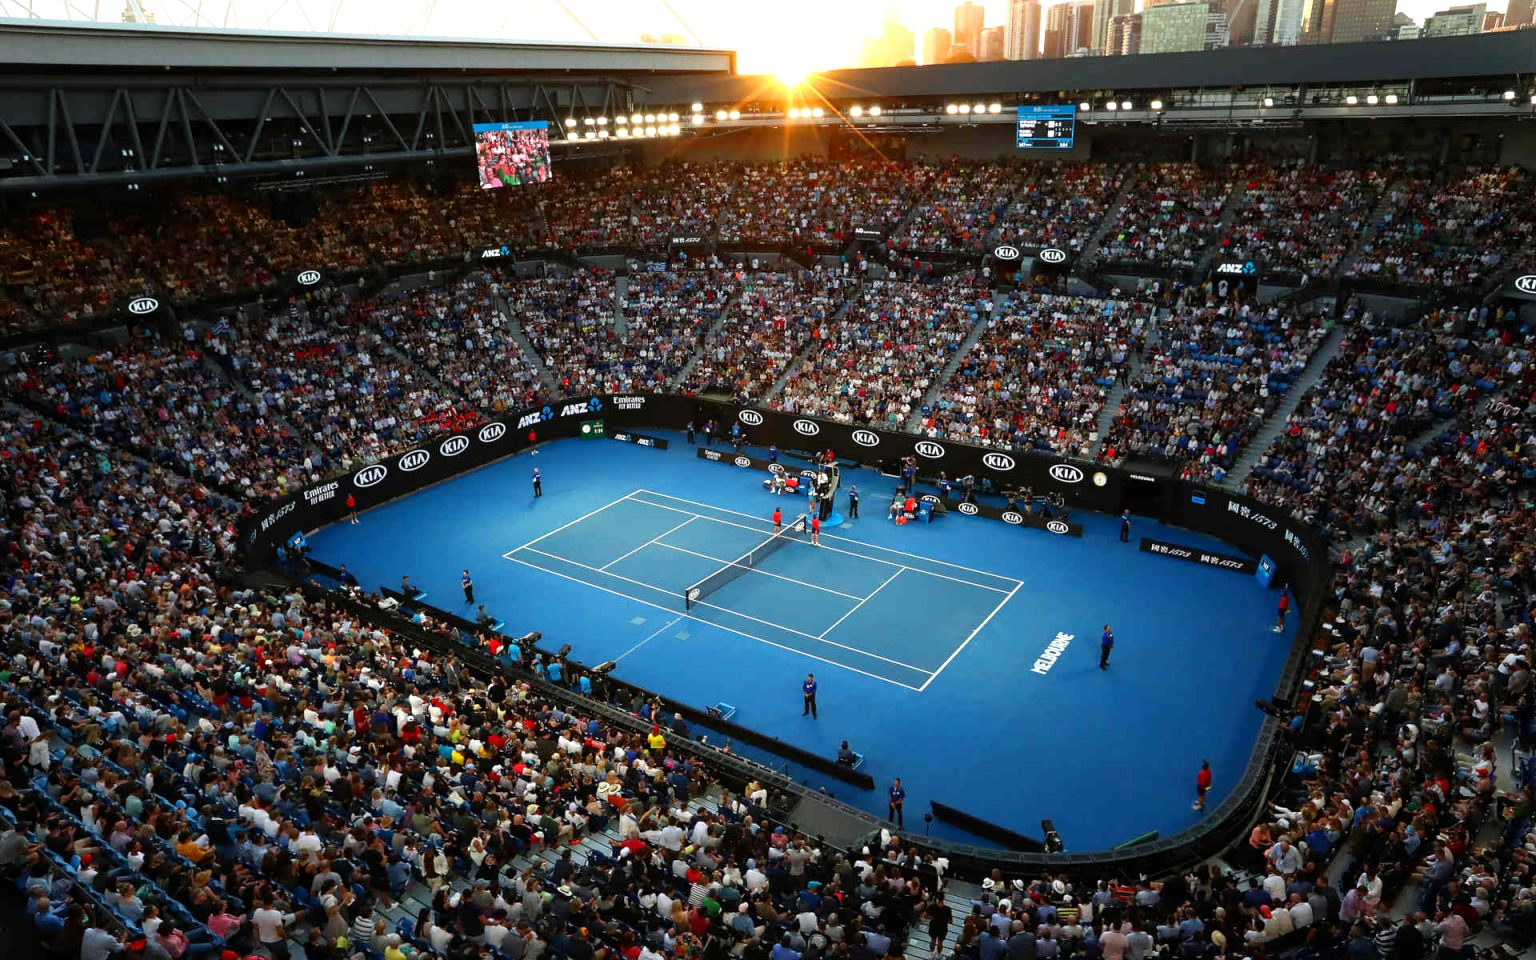 kia tennis competition 2021 Overview